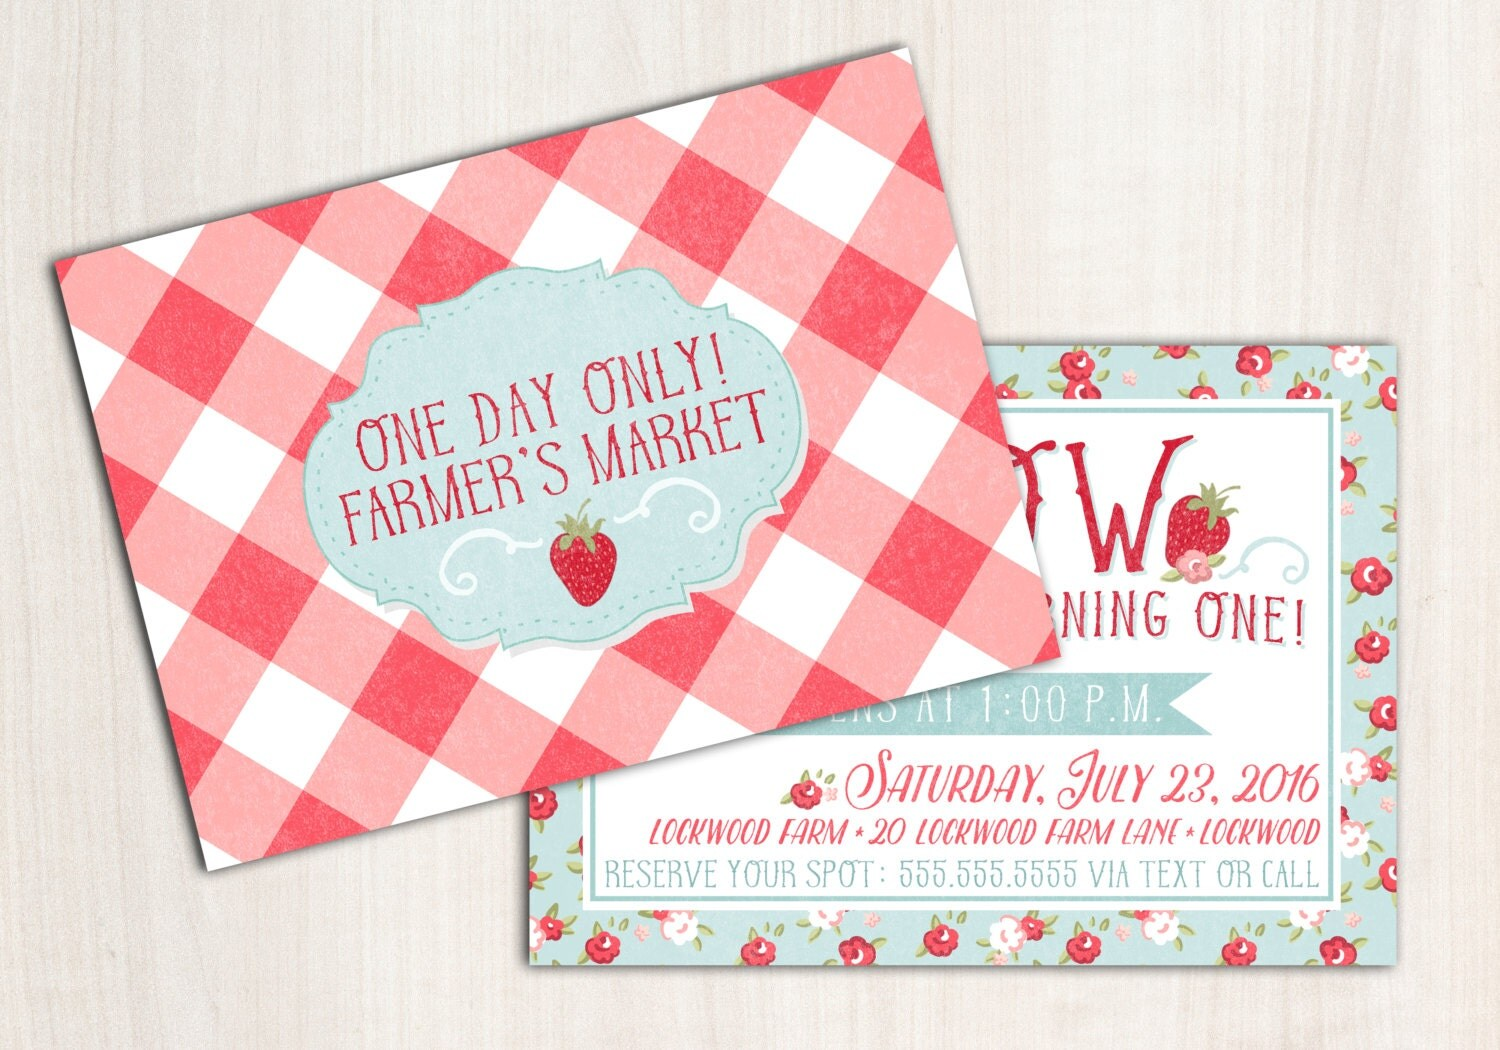 Farmer's Market Invitation - Country picnic party - Farmers Market Party Supplies